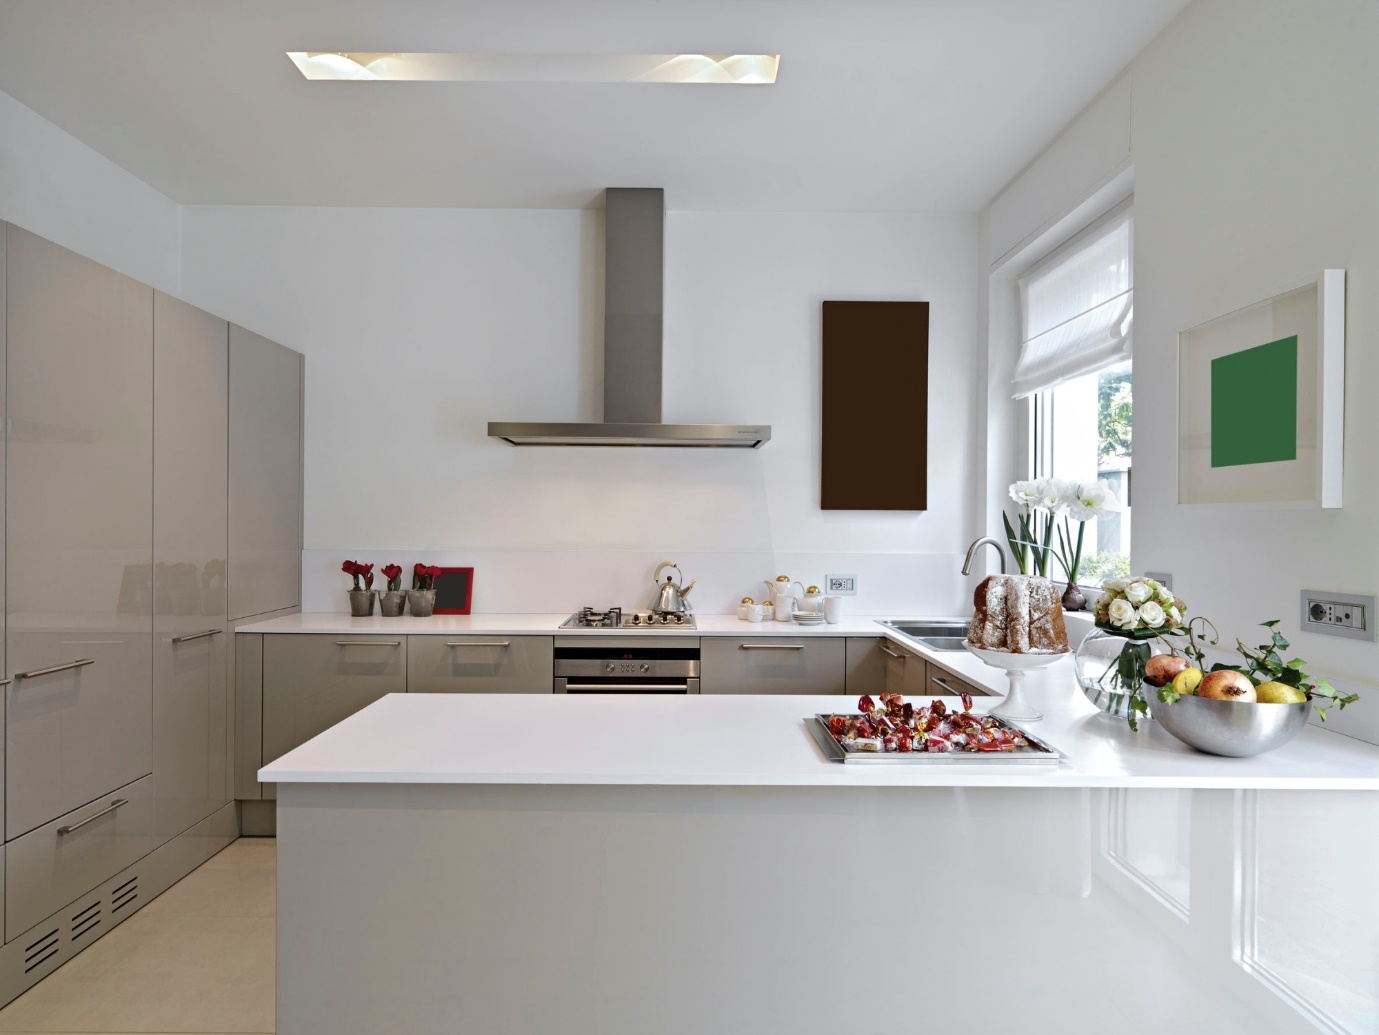 Kitchen Bathroom Bedroom. Lanarkshire and Glasgow ,Kudos offer a Free no obligation plan and design on all Fully Fitted Kitchens, Bathrooms & Bedrooms in the Glasgow and Lanarkshire Area.North and South Lanarkshire